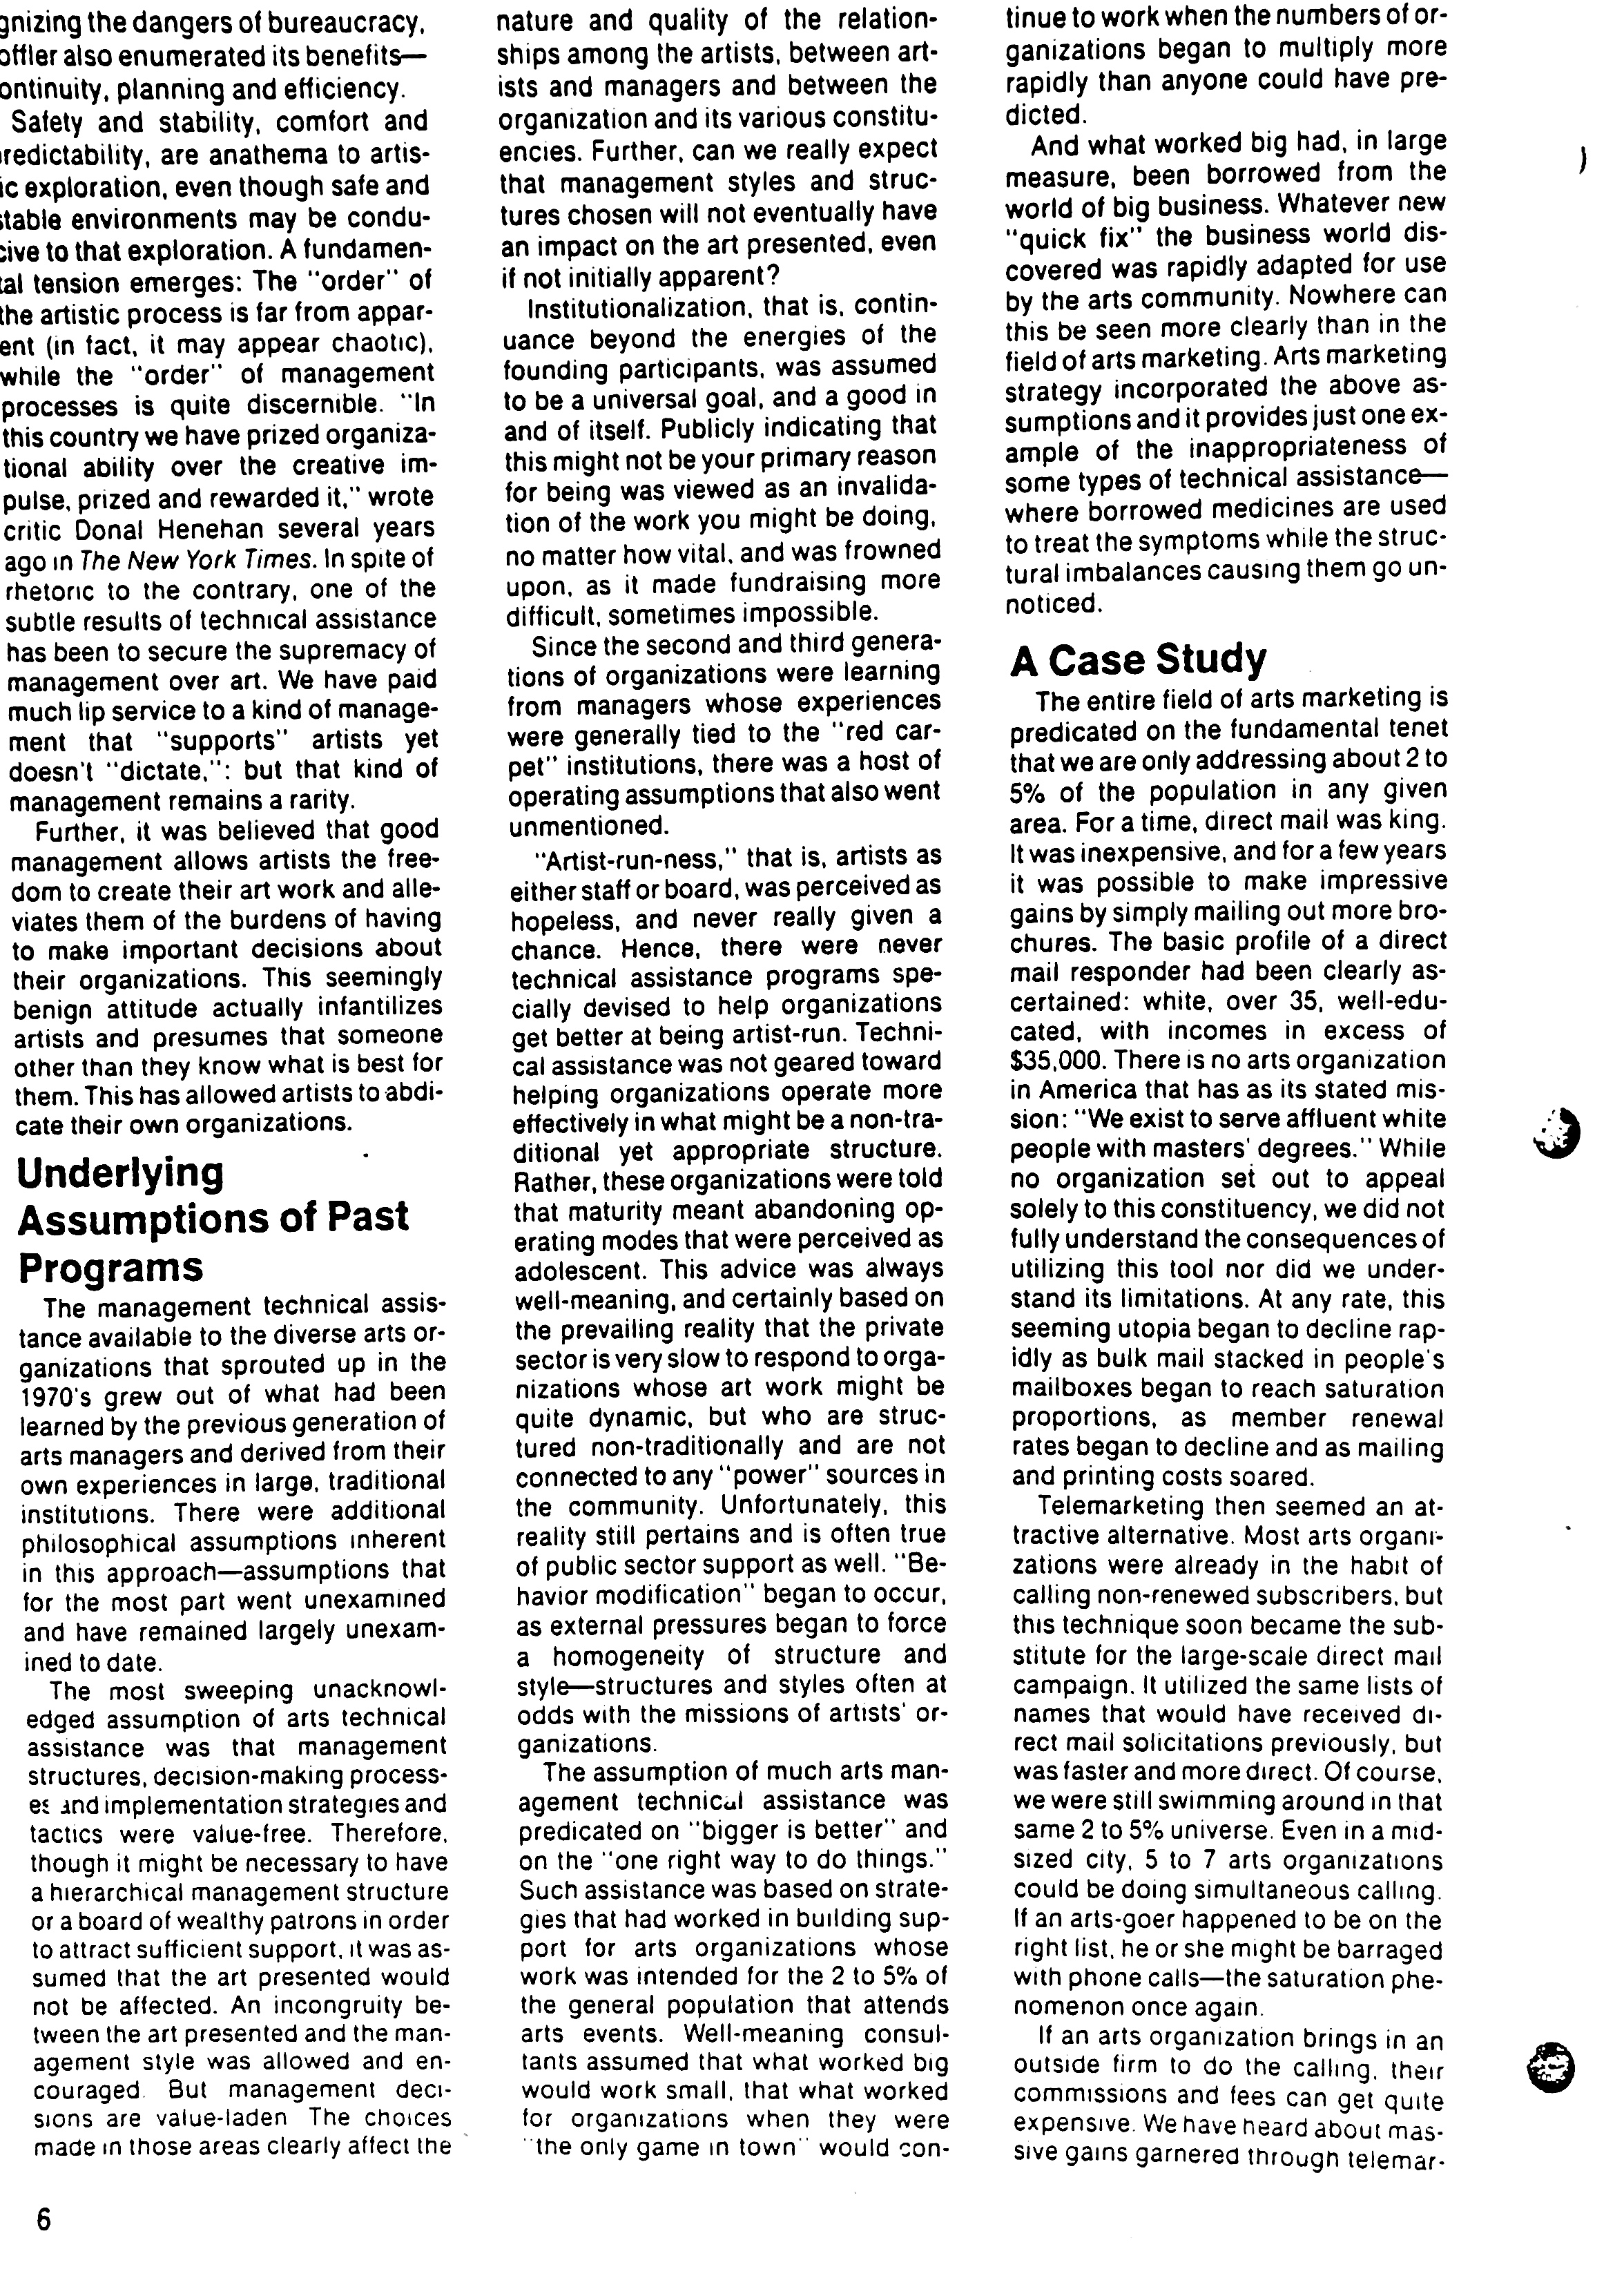 January-February 1988 - NAAO Commissioned Report Page 6.jpg